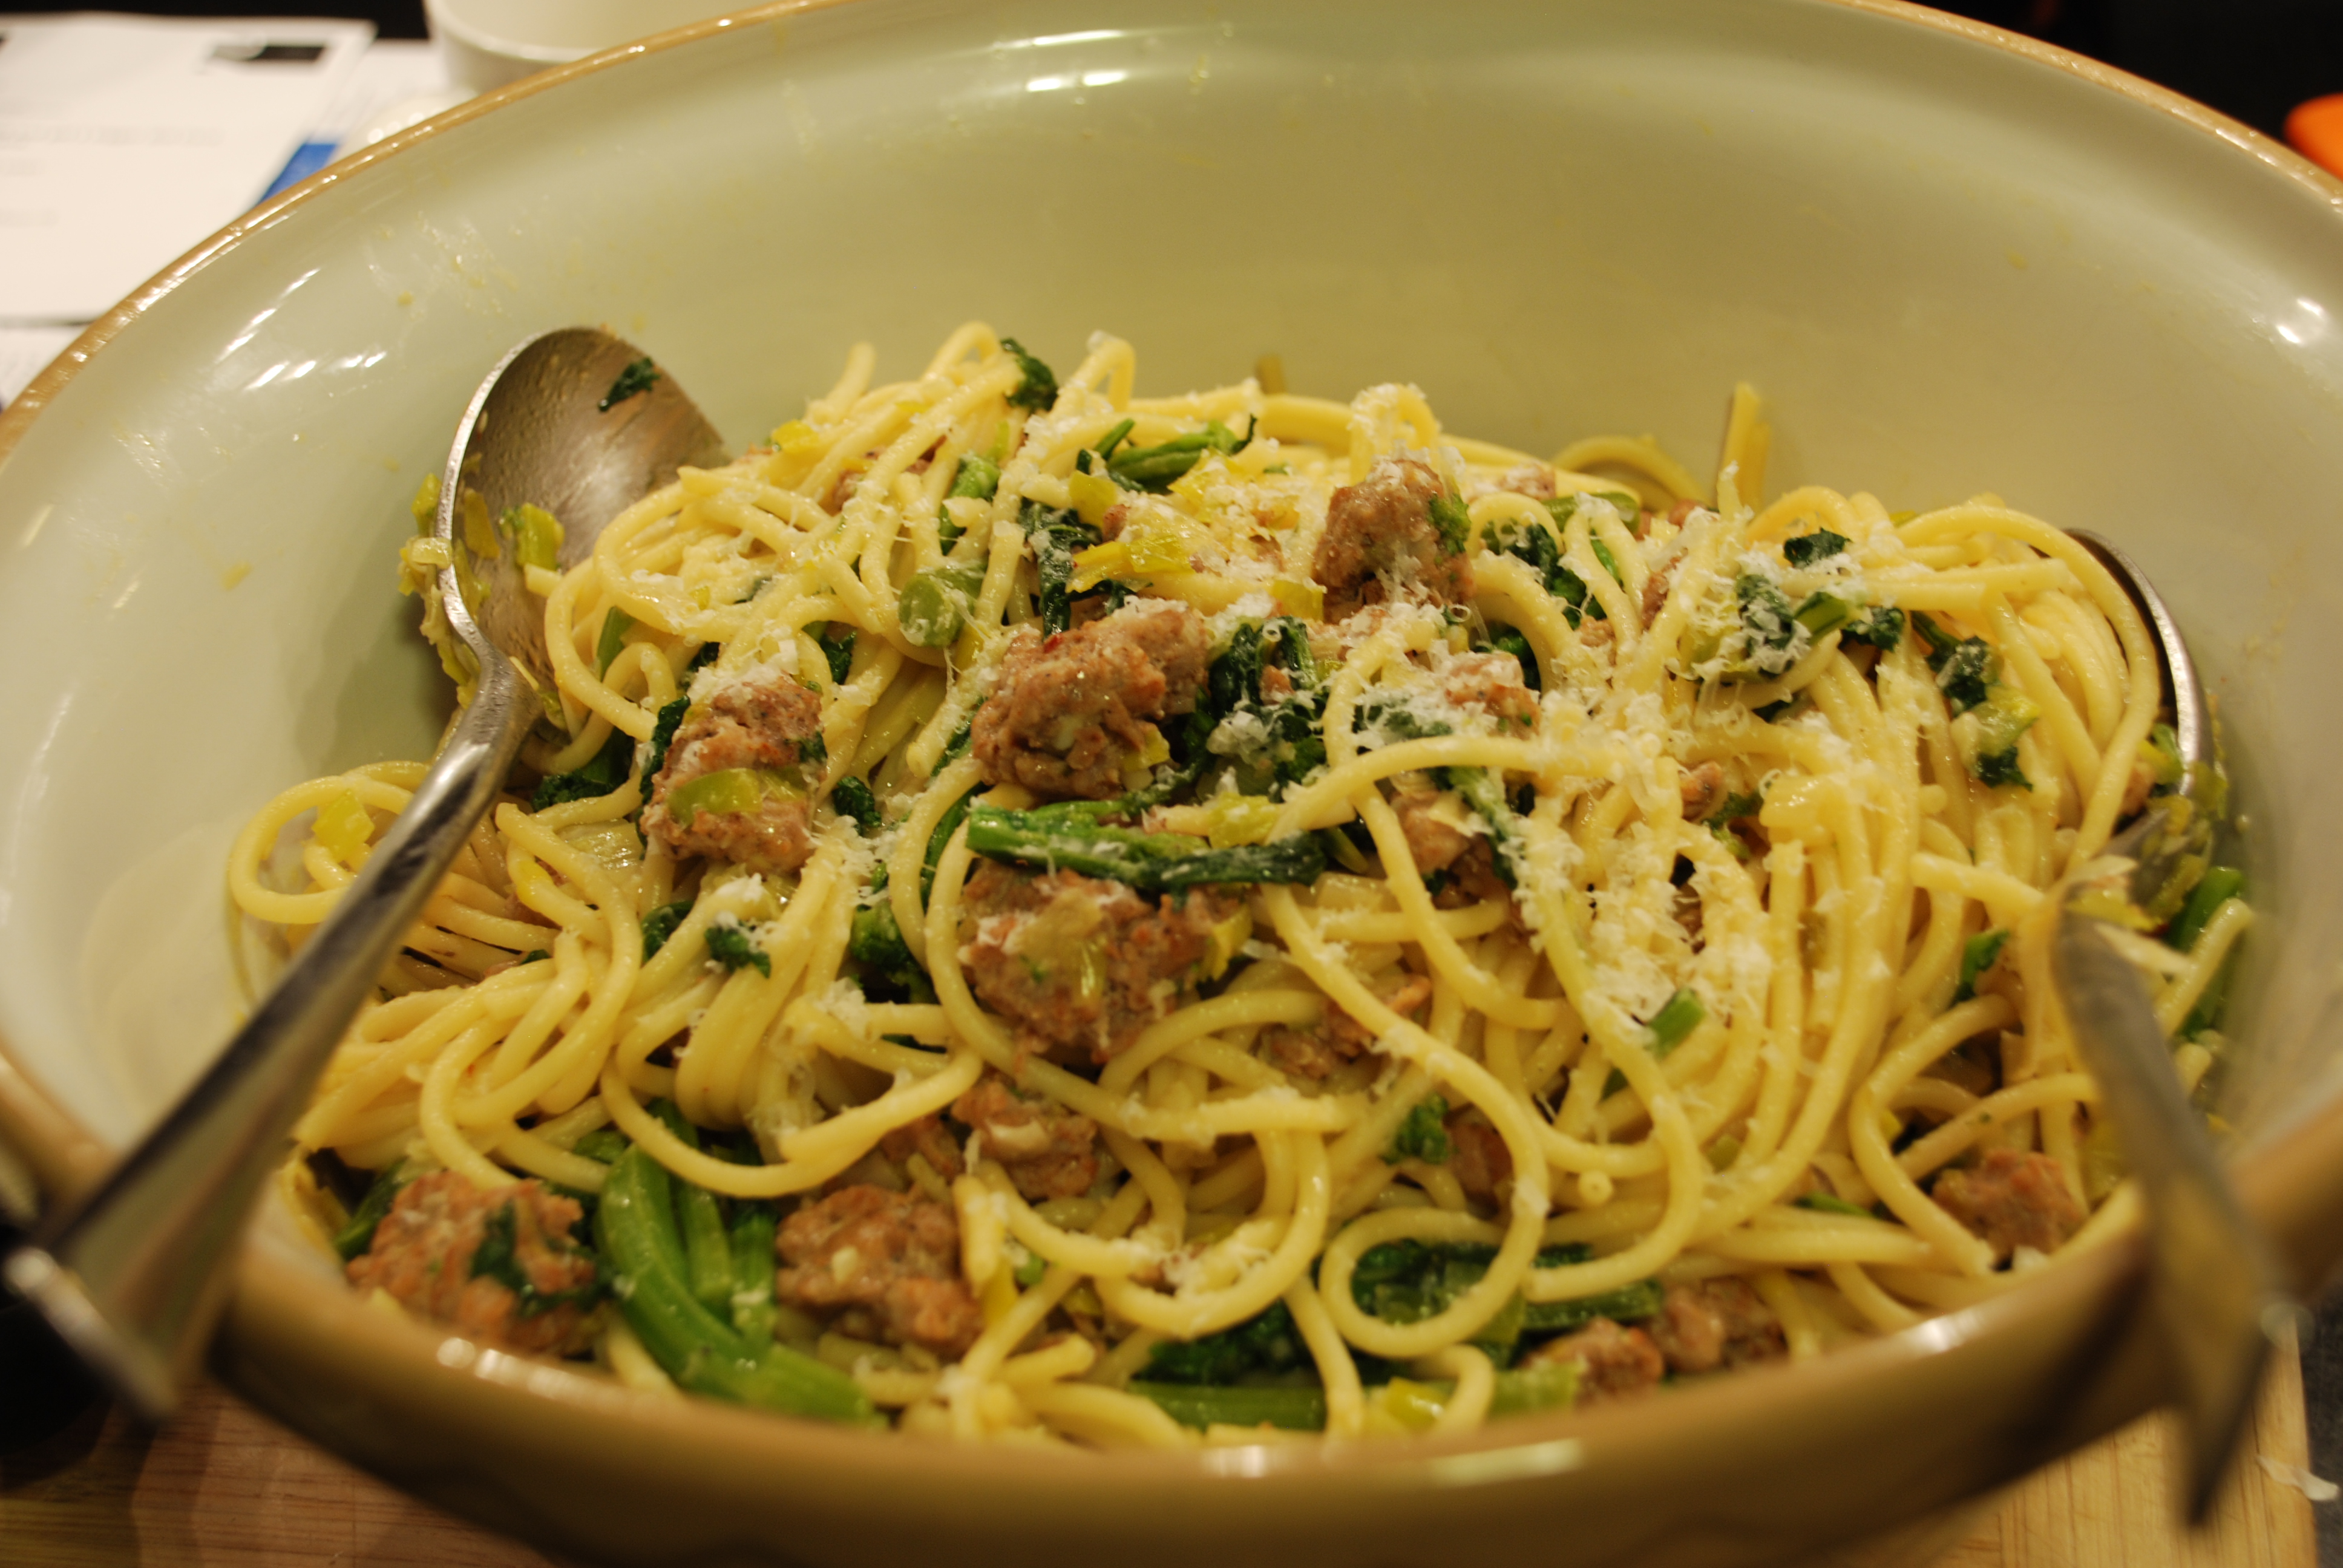 Pasta with broccoli rabe and chicken sausage in a bowl.